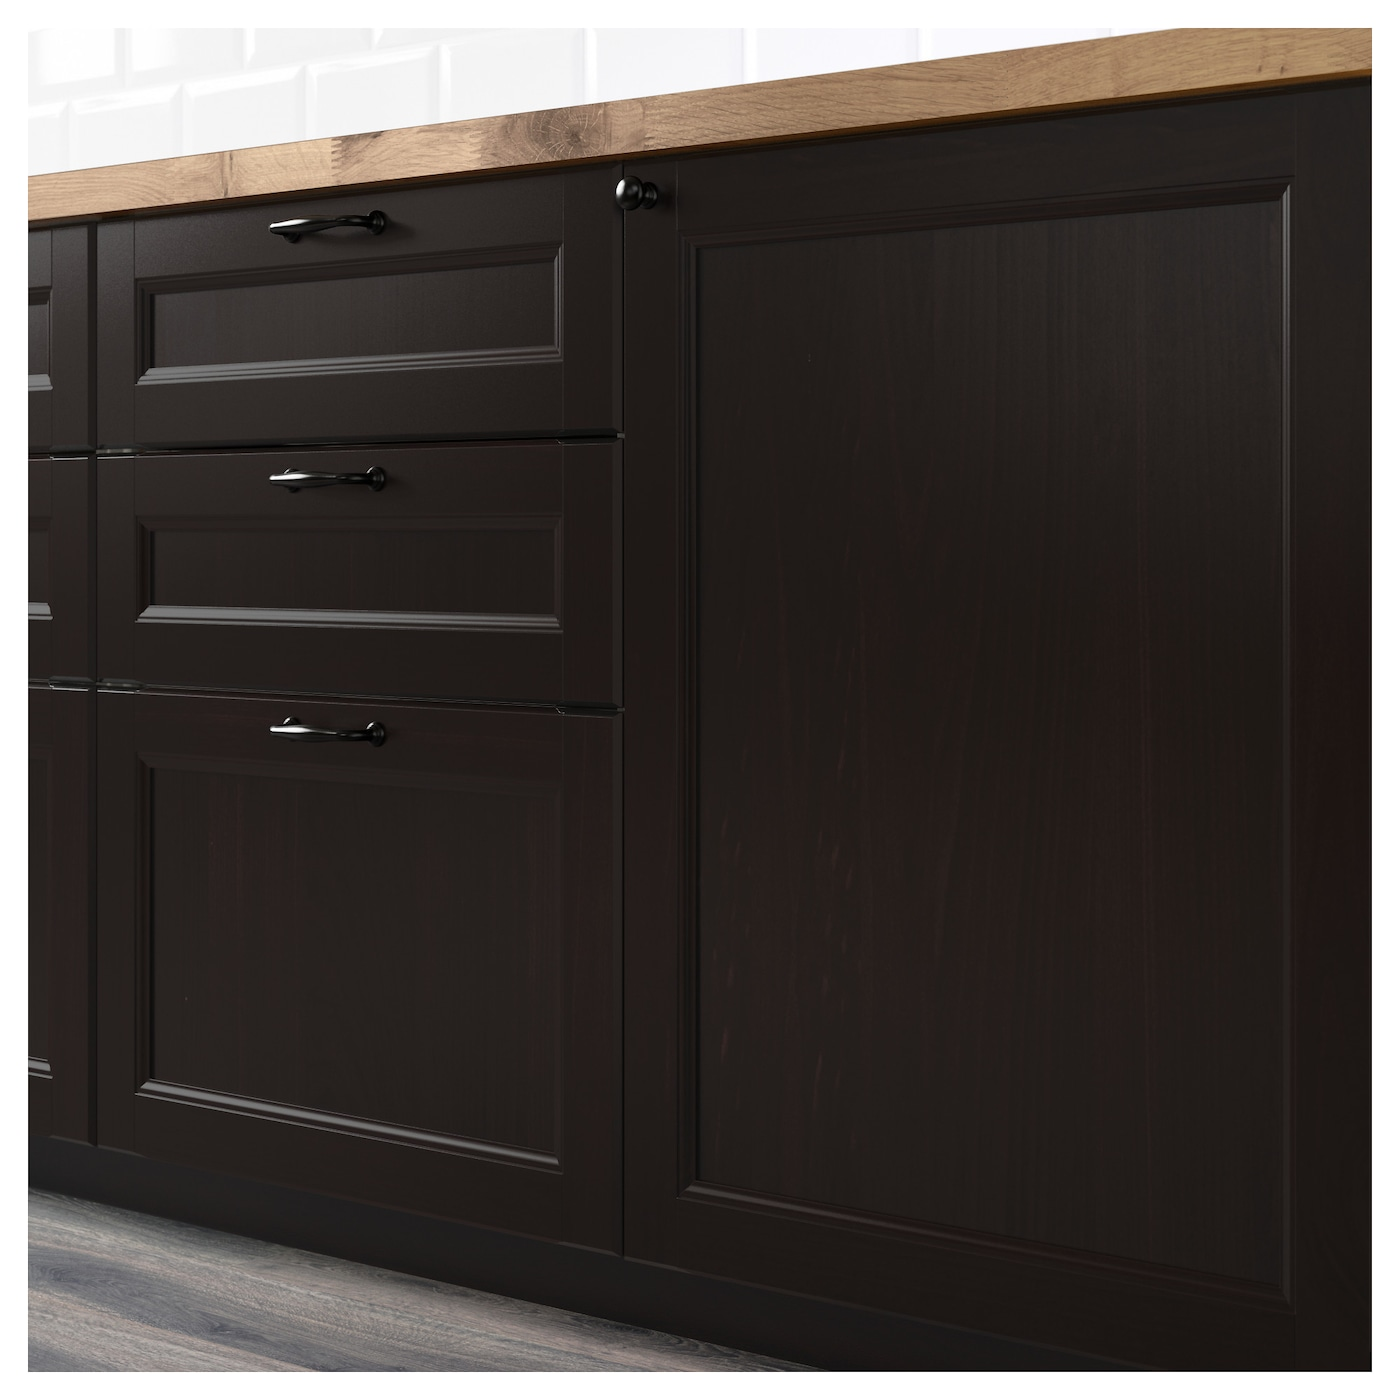 Laxarby door black brown 60x100 cm ikea for Black kitchen cabinets with wood doors